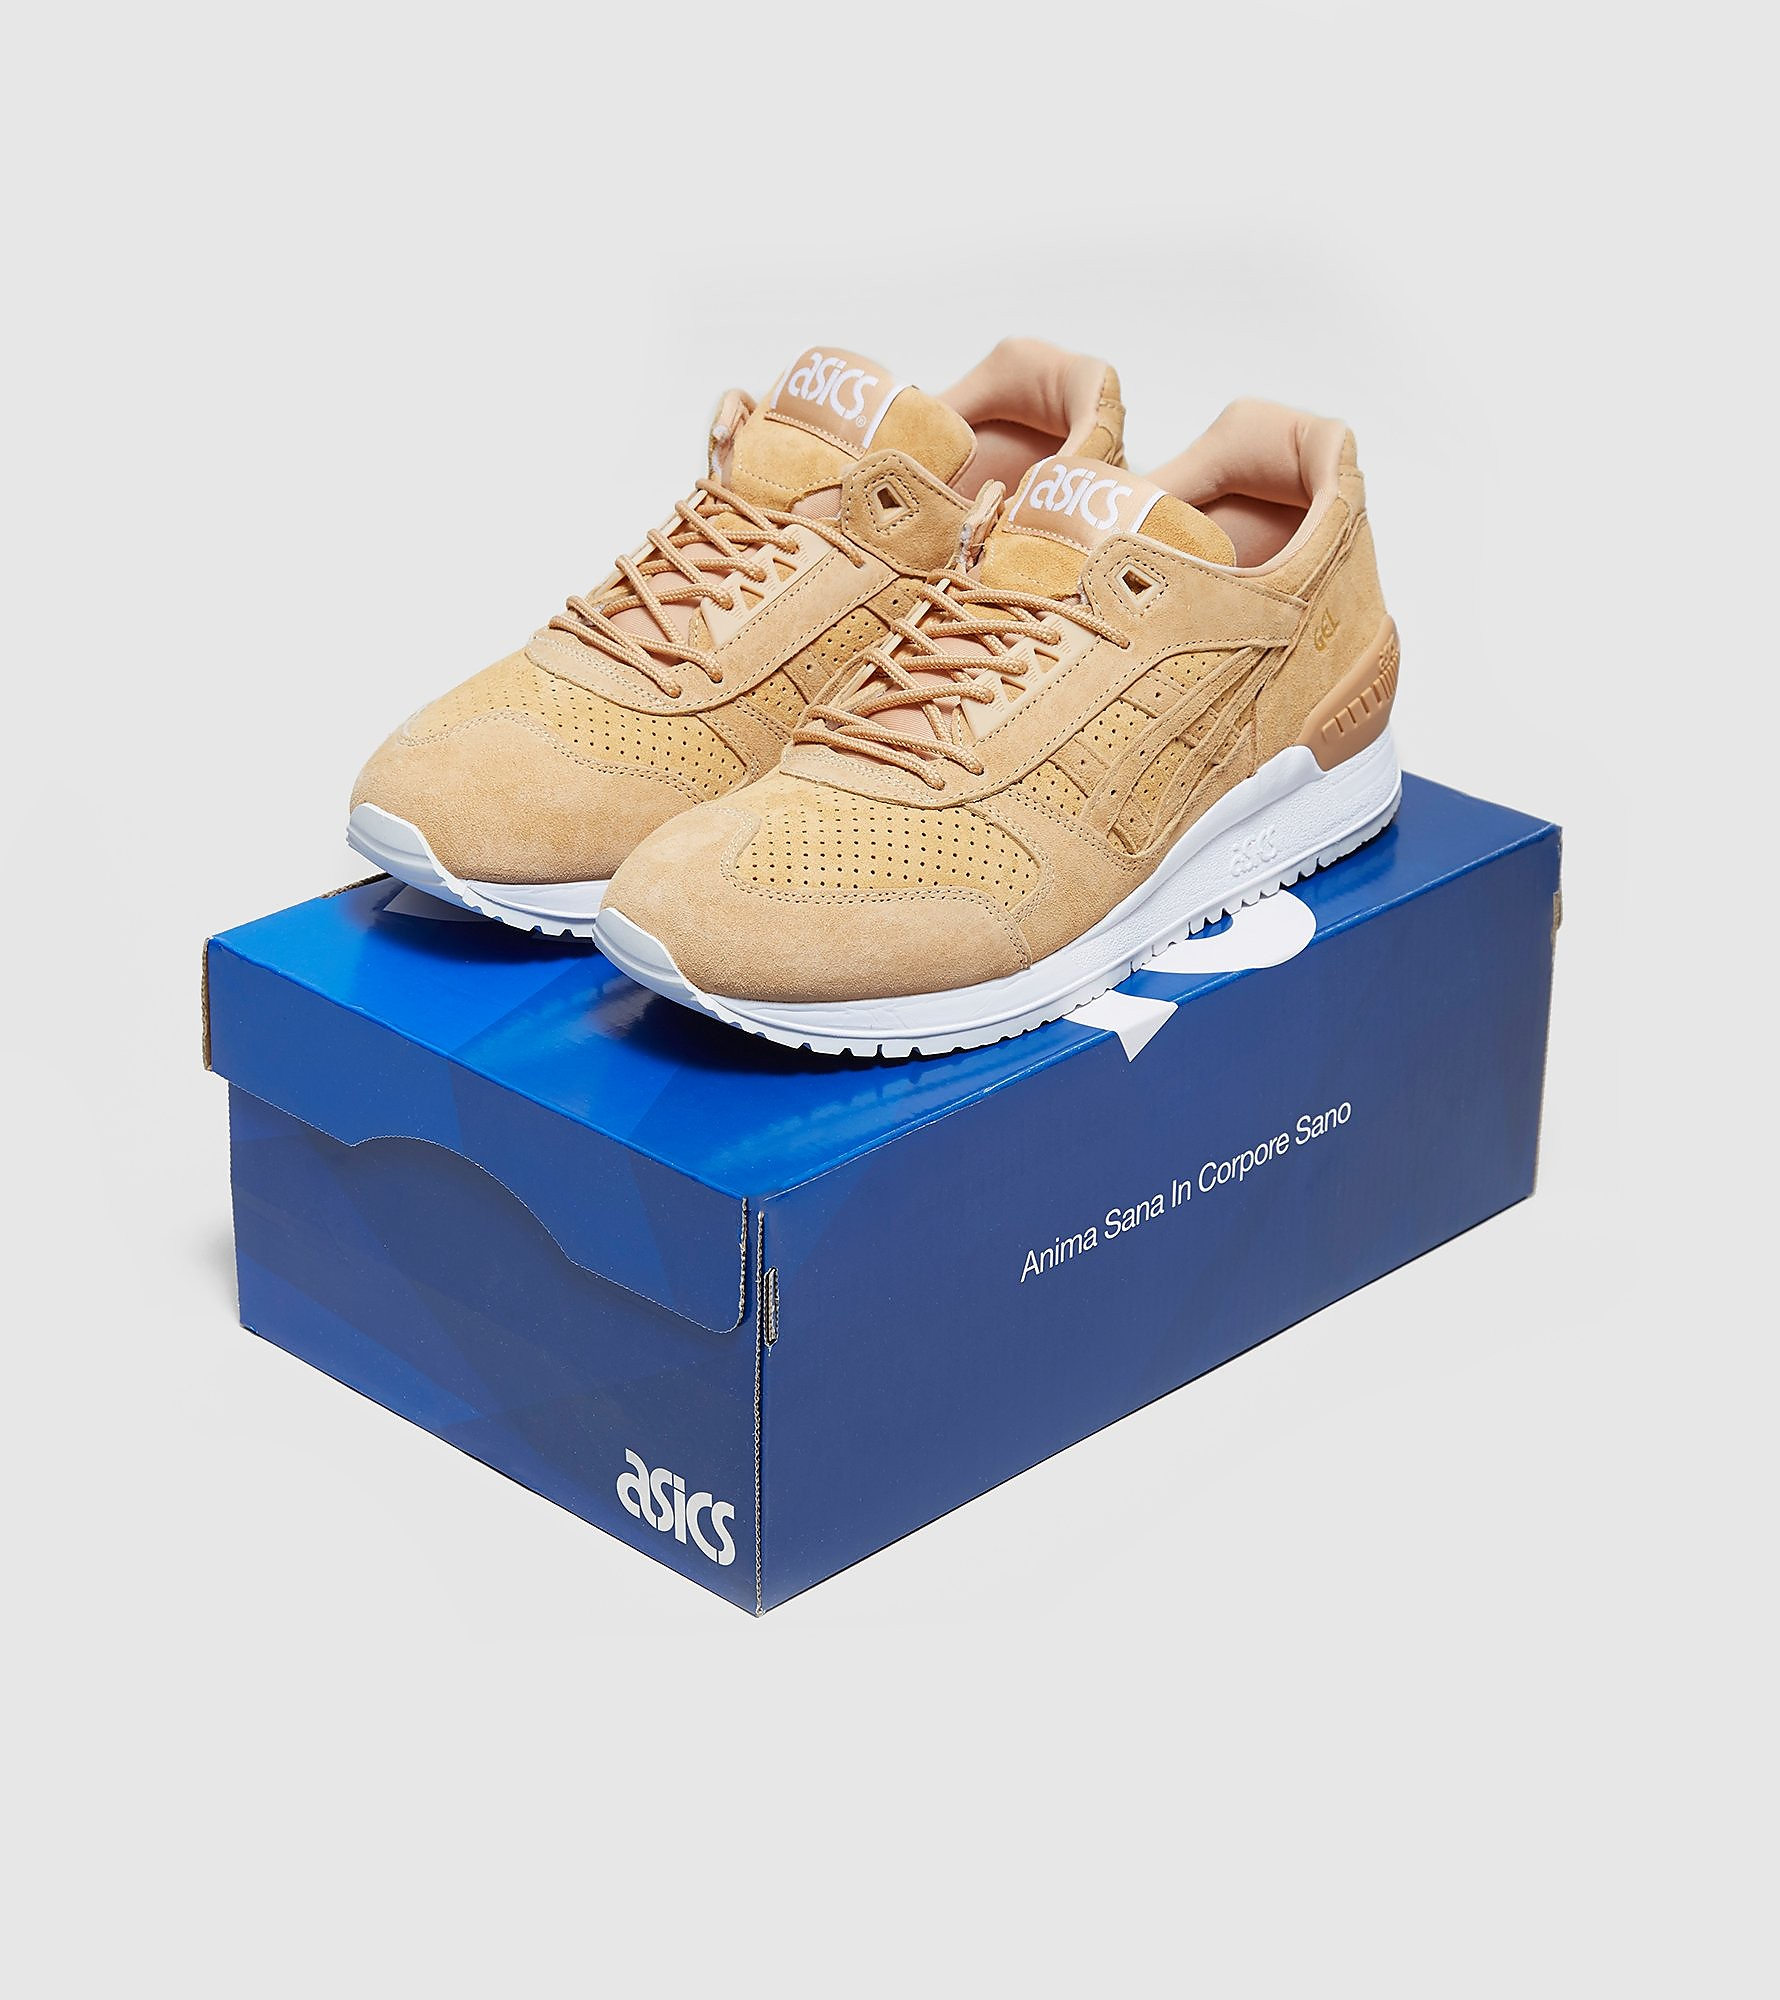 ASICS GEL-Respector Premium - size? European Exclusive